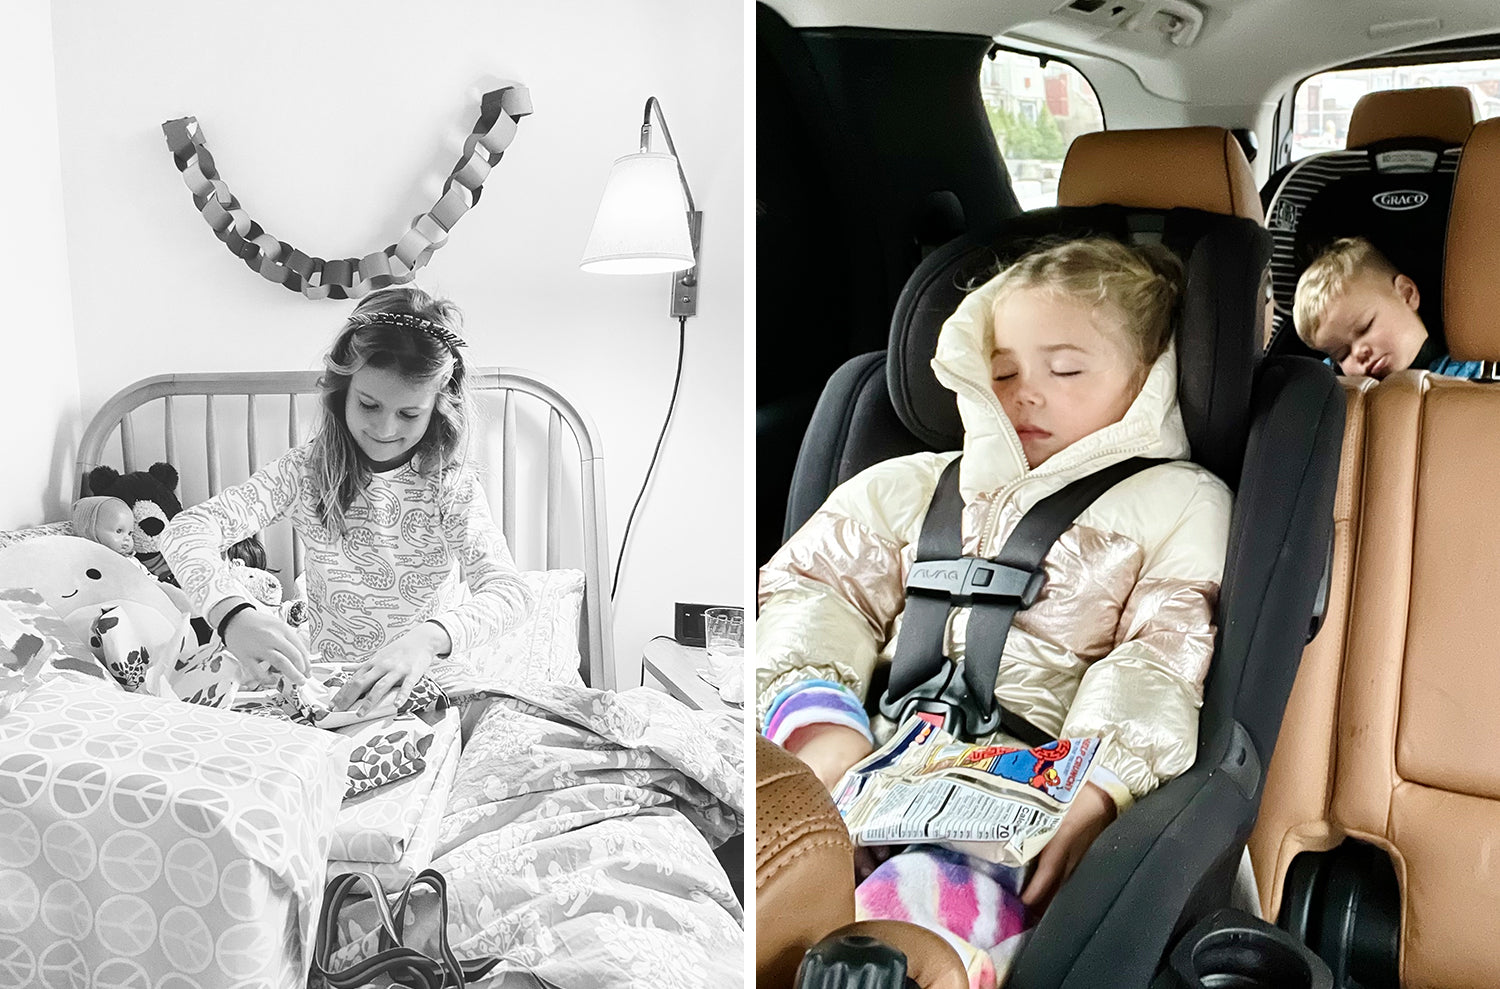 Photos of the Lewis family this week - celebrating a birthday morning in Lewis pajamas and bedding, and siblings napping in the car.